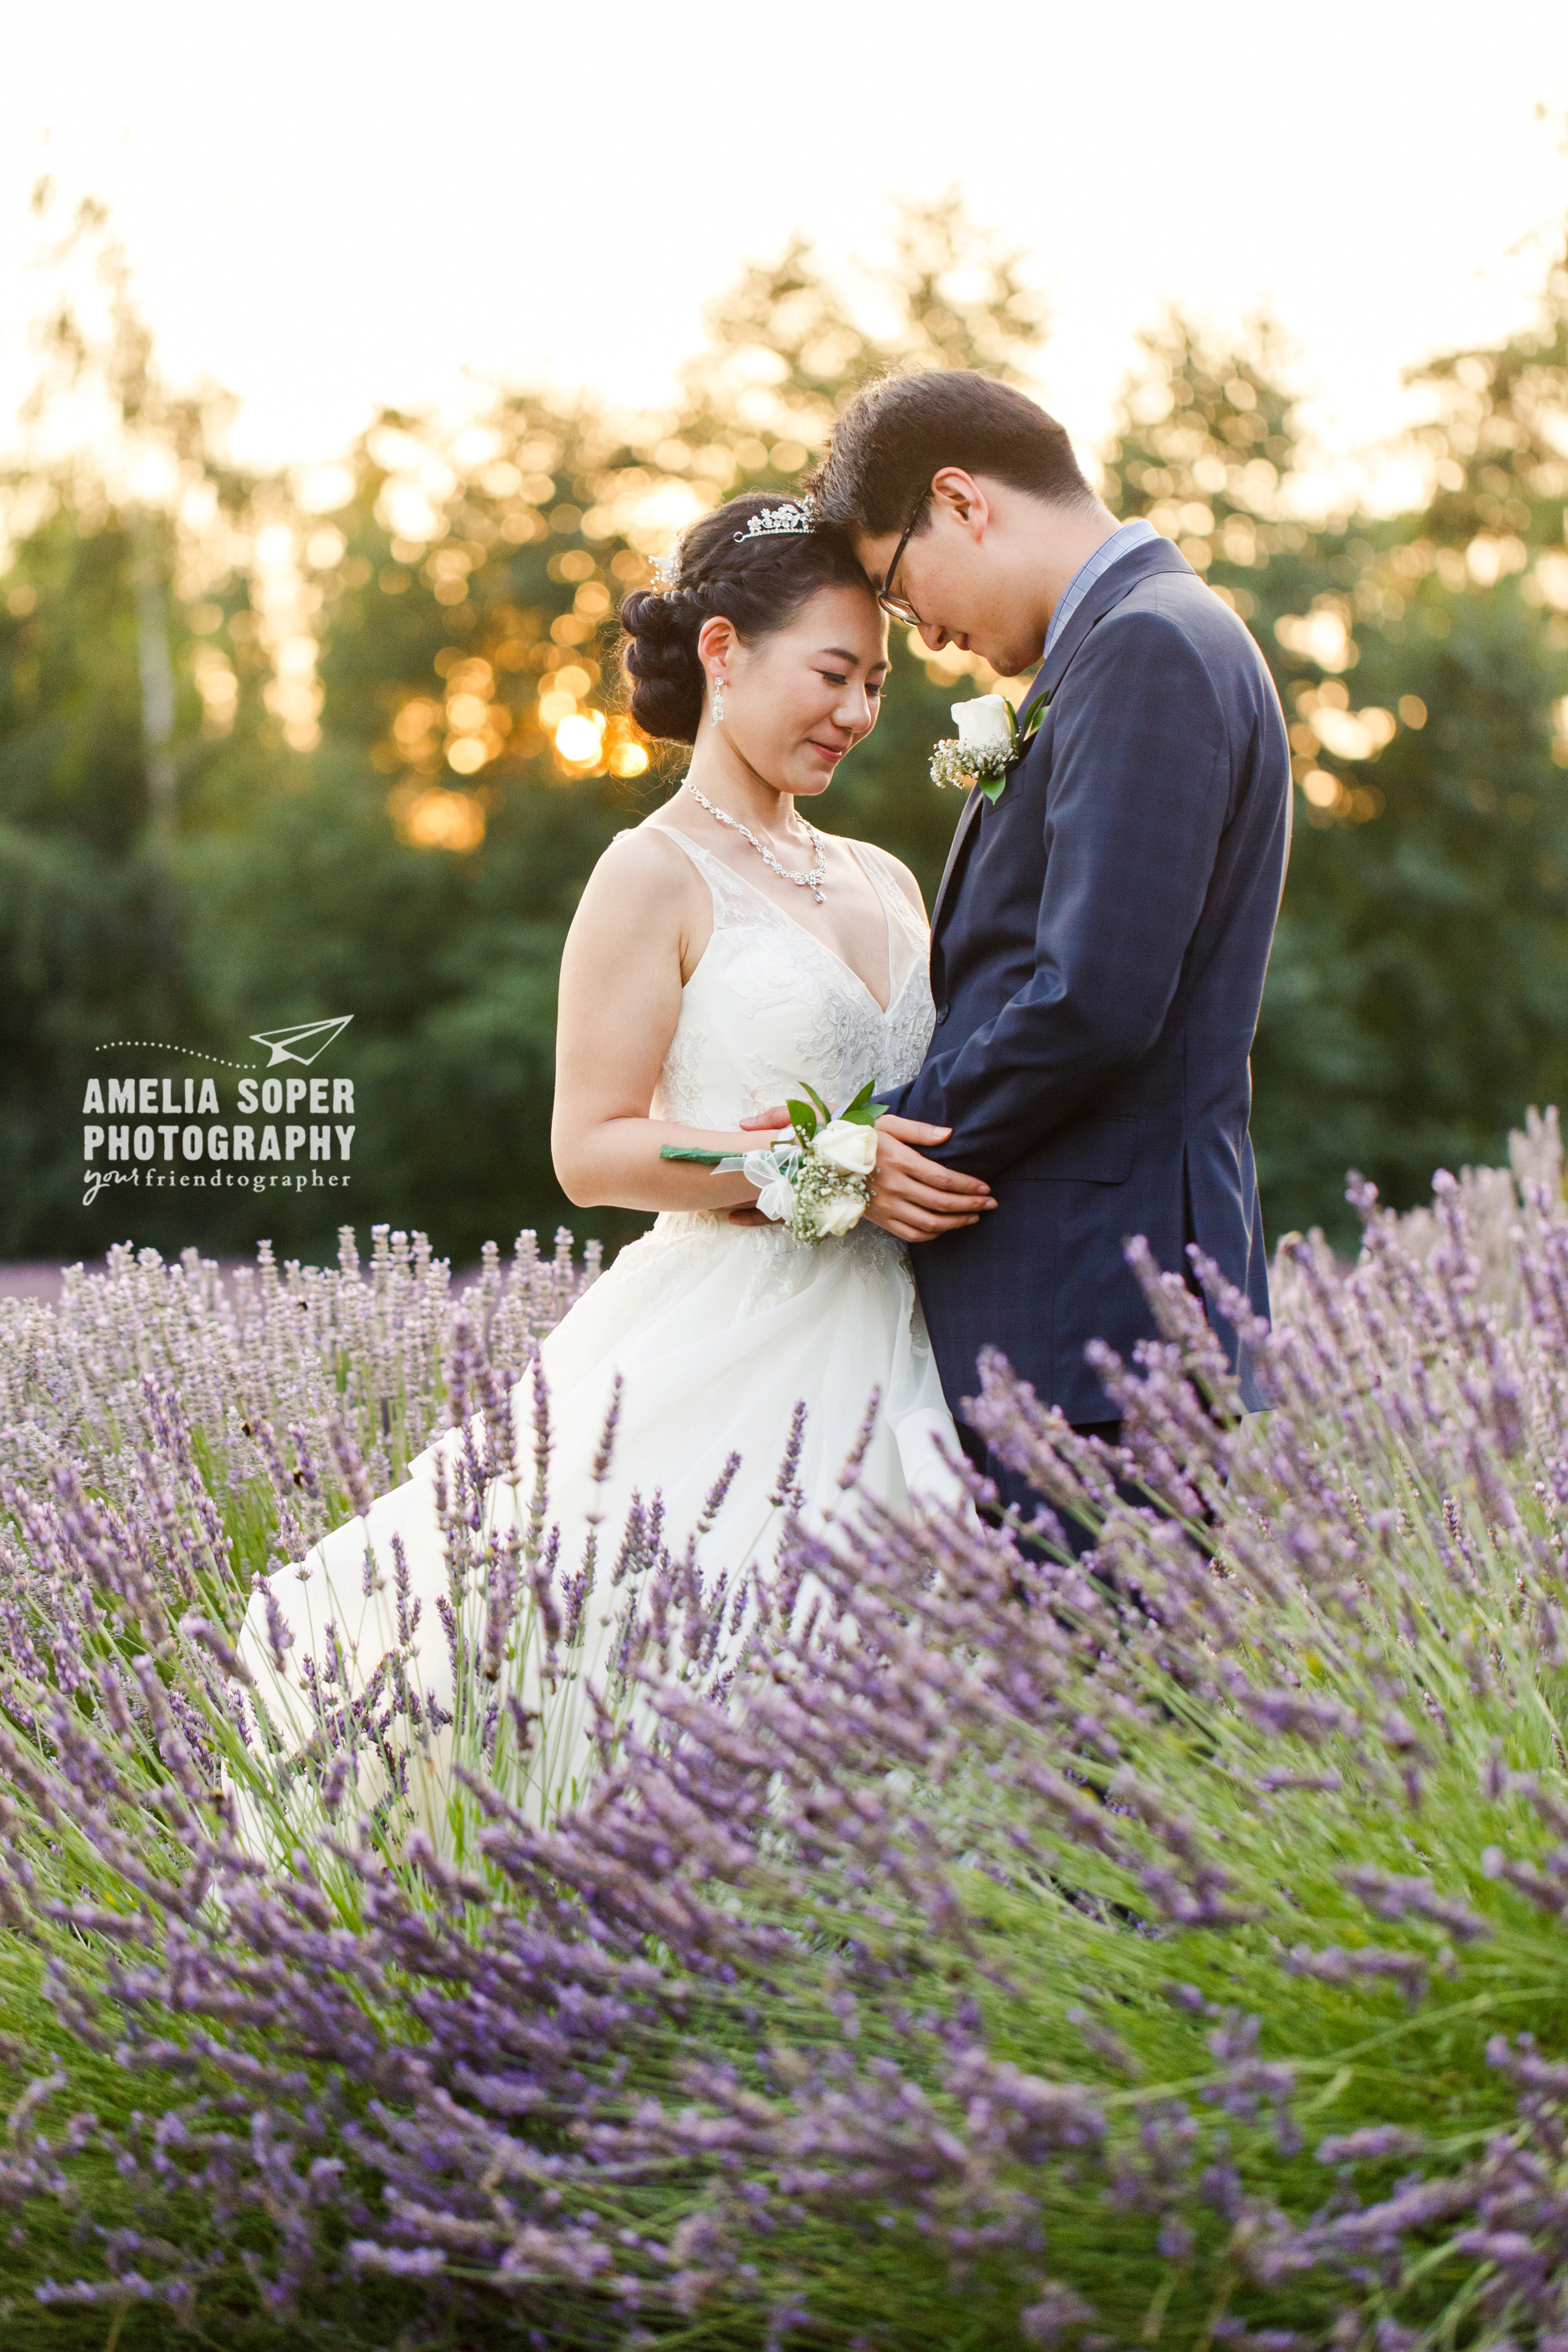 Woodinville Lavender Wedding, Bride and Groom in Lavender field